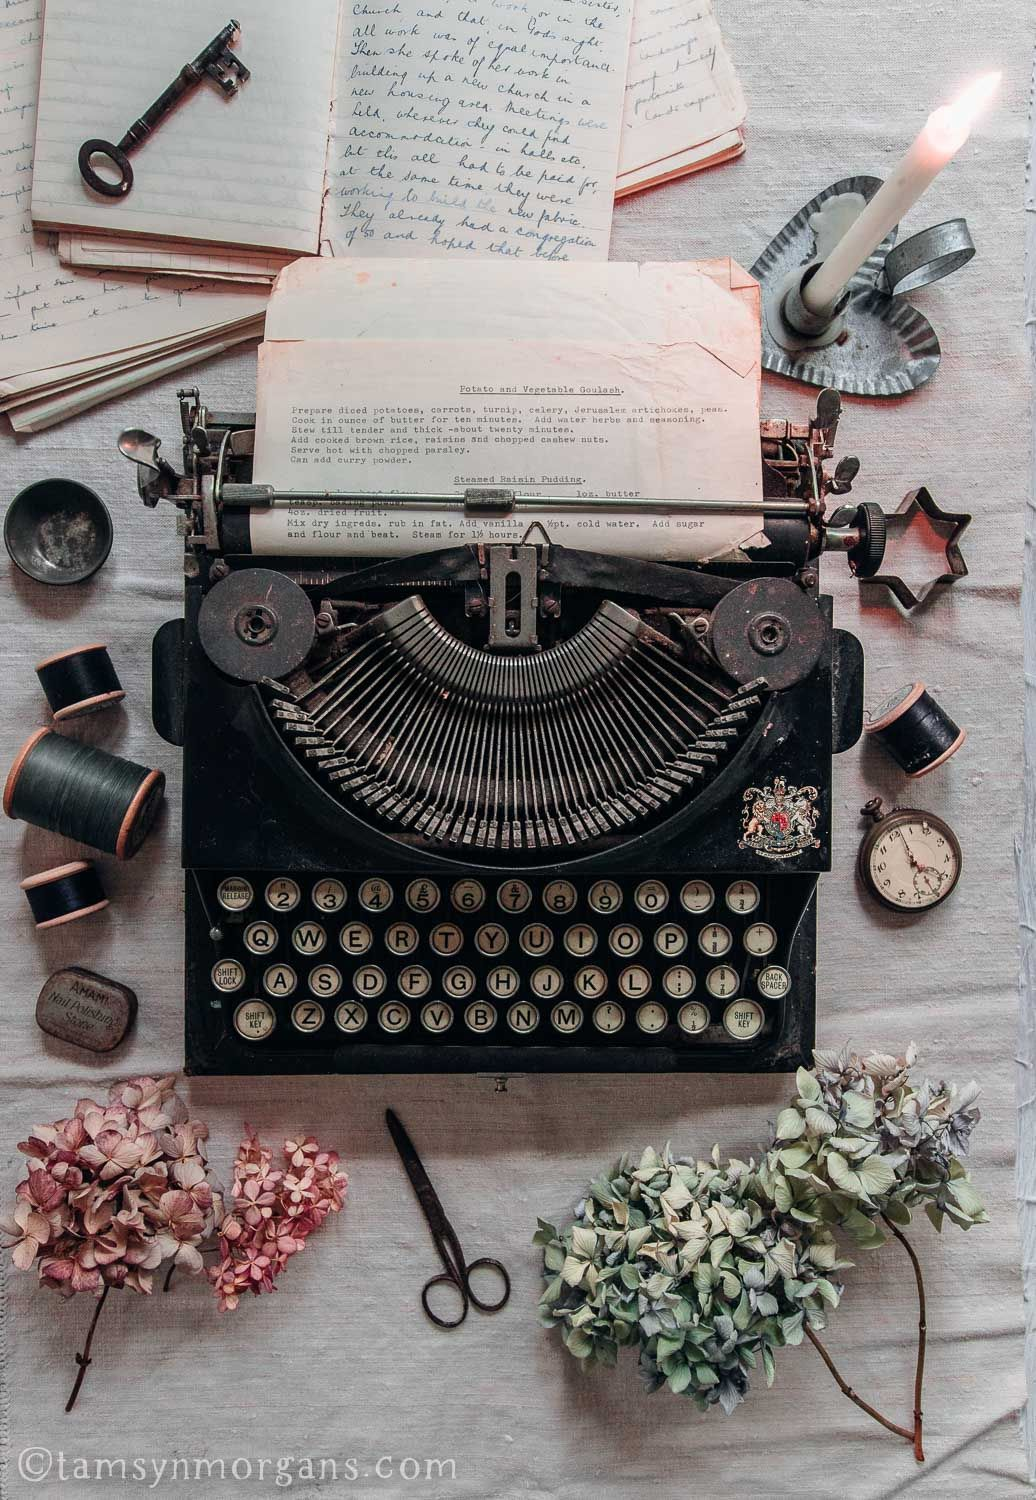 Behind The Scenes With Tamsynmorgans In 2020 Vintage Typewriters Typewriter Aesthetic Pictures